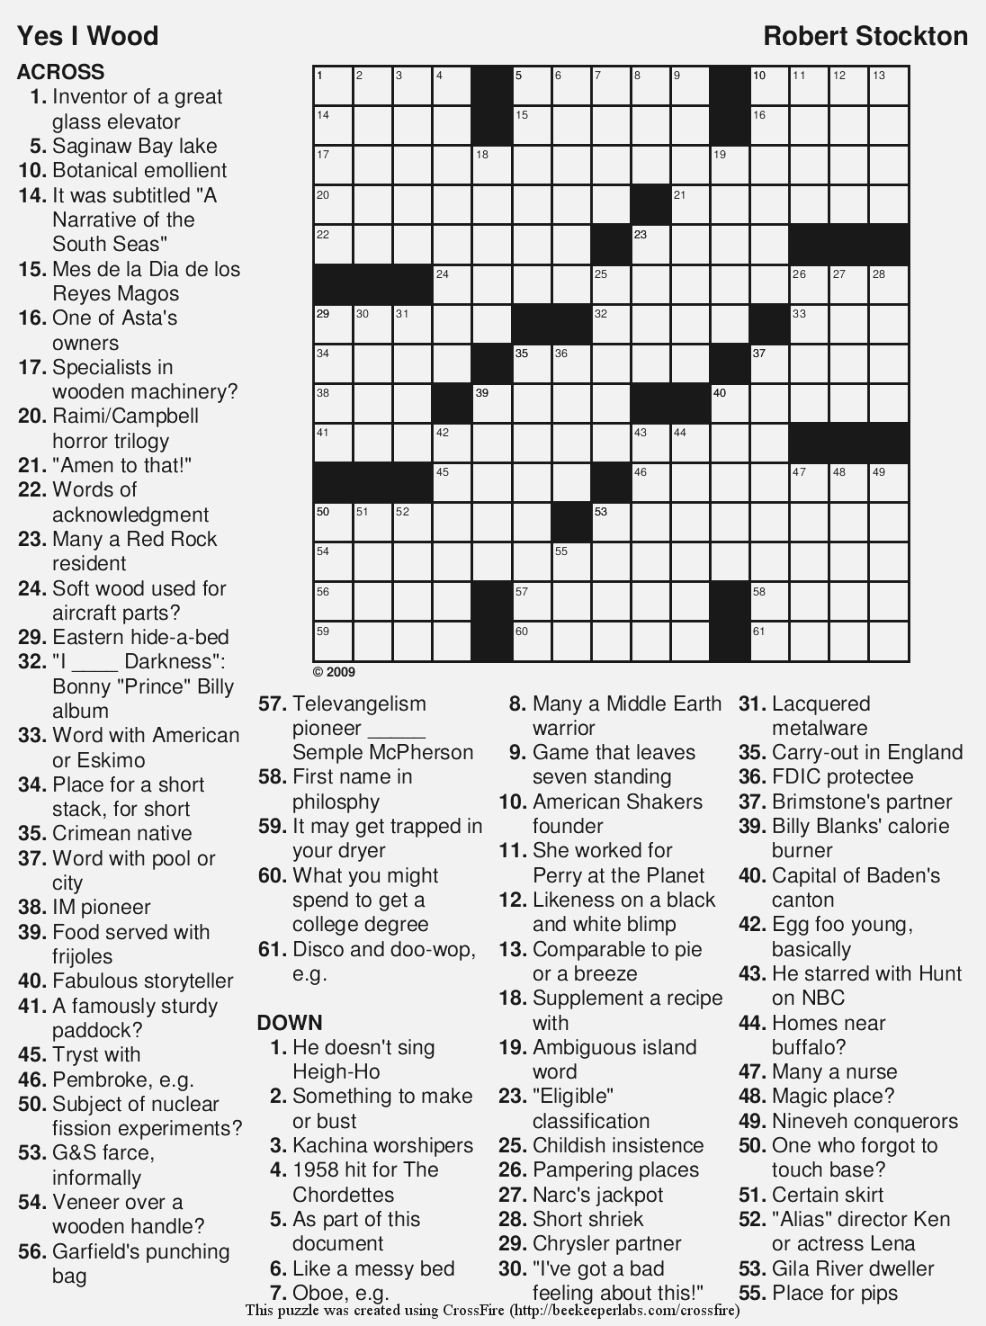 Free Printable Large Print Crossword Puzzles | M3U8 - Printable Crossword Puzzle For 10 Year Old